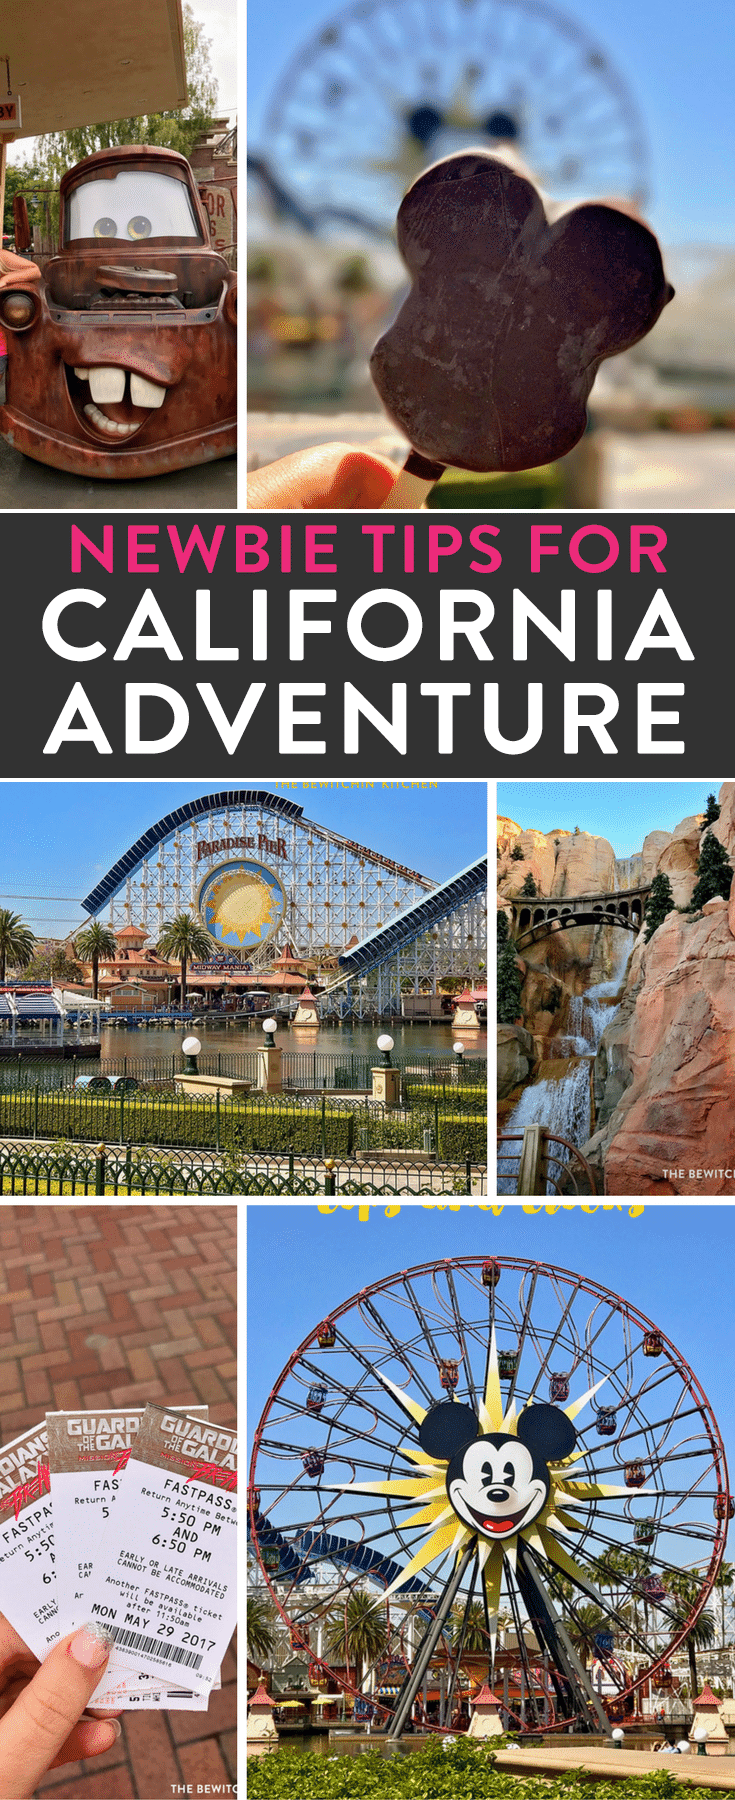 Planning a trip to Disneyland? Don't forget about Disney California Adventure! Here are some California Adventure Tips so you can see all that DCA offers.